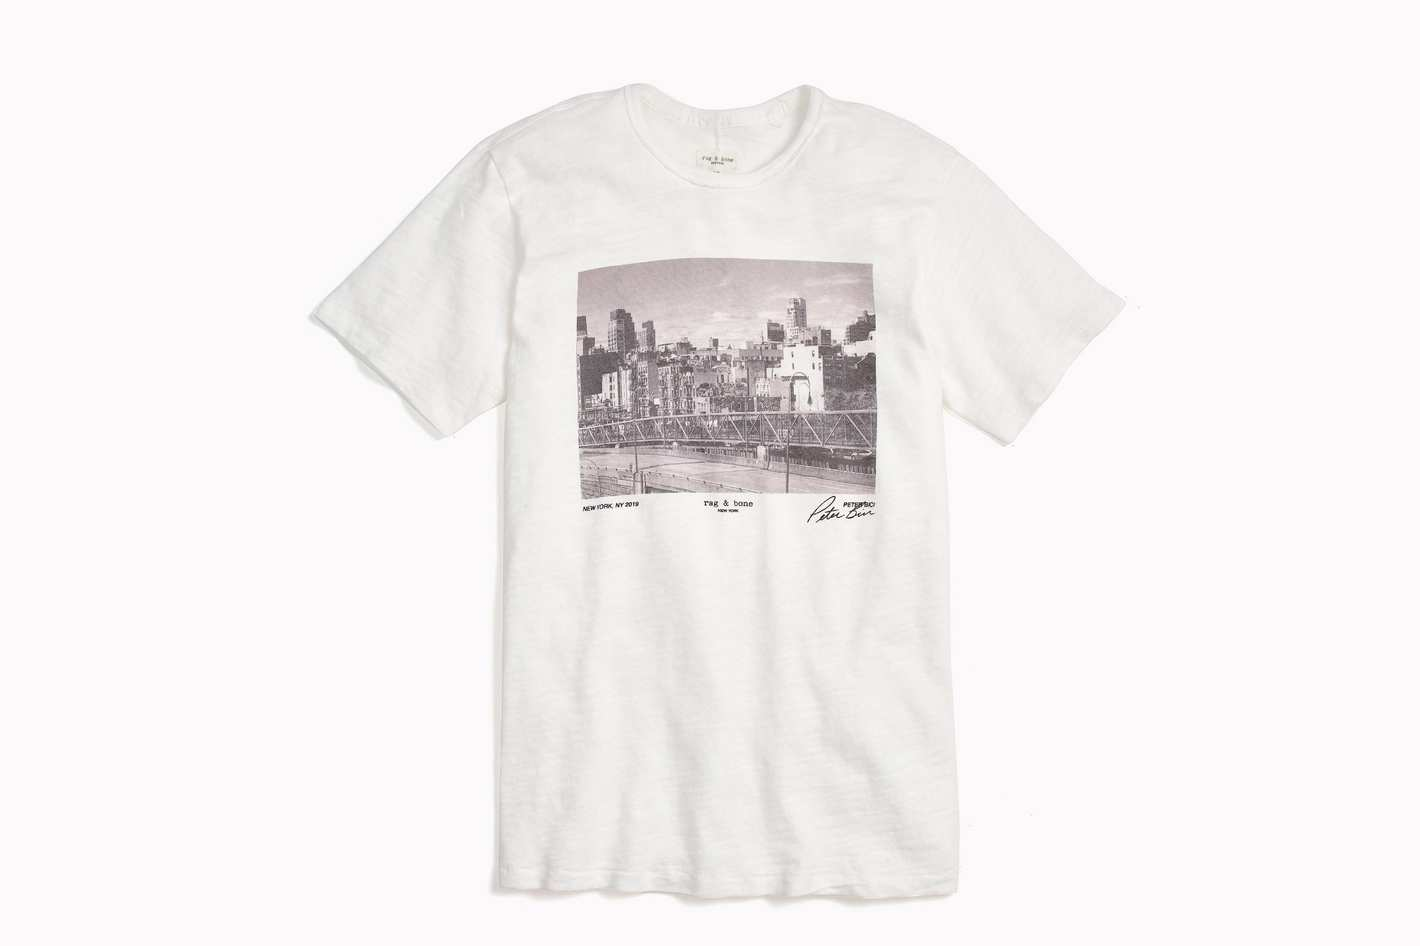 Limited Edition Tee By Peter Bici